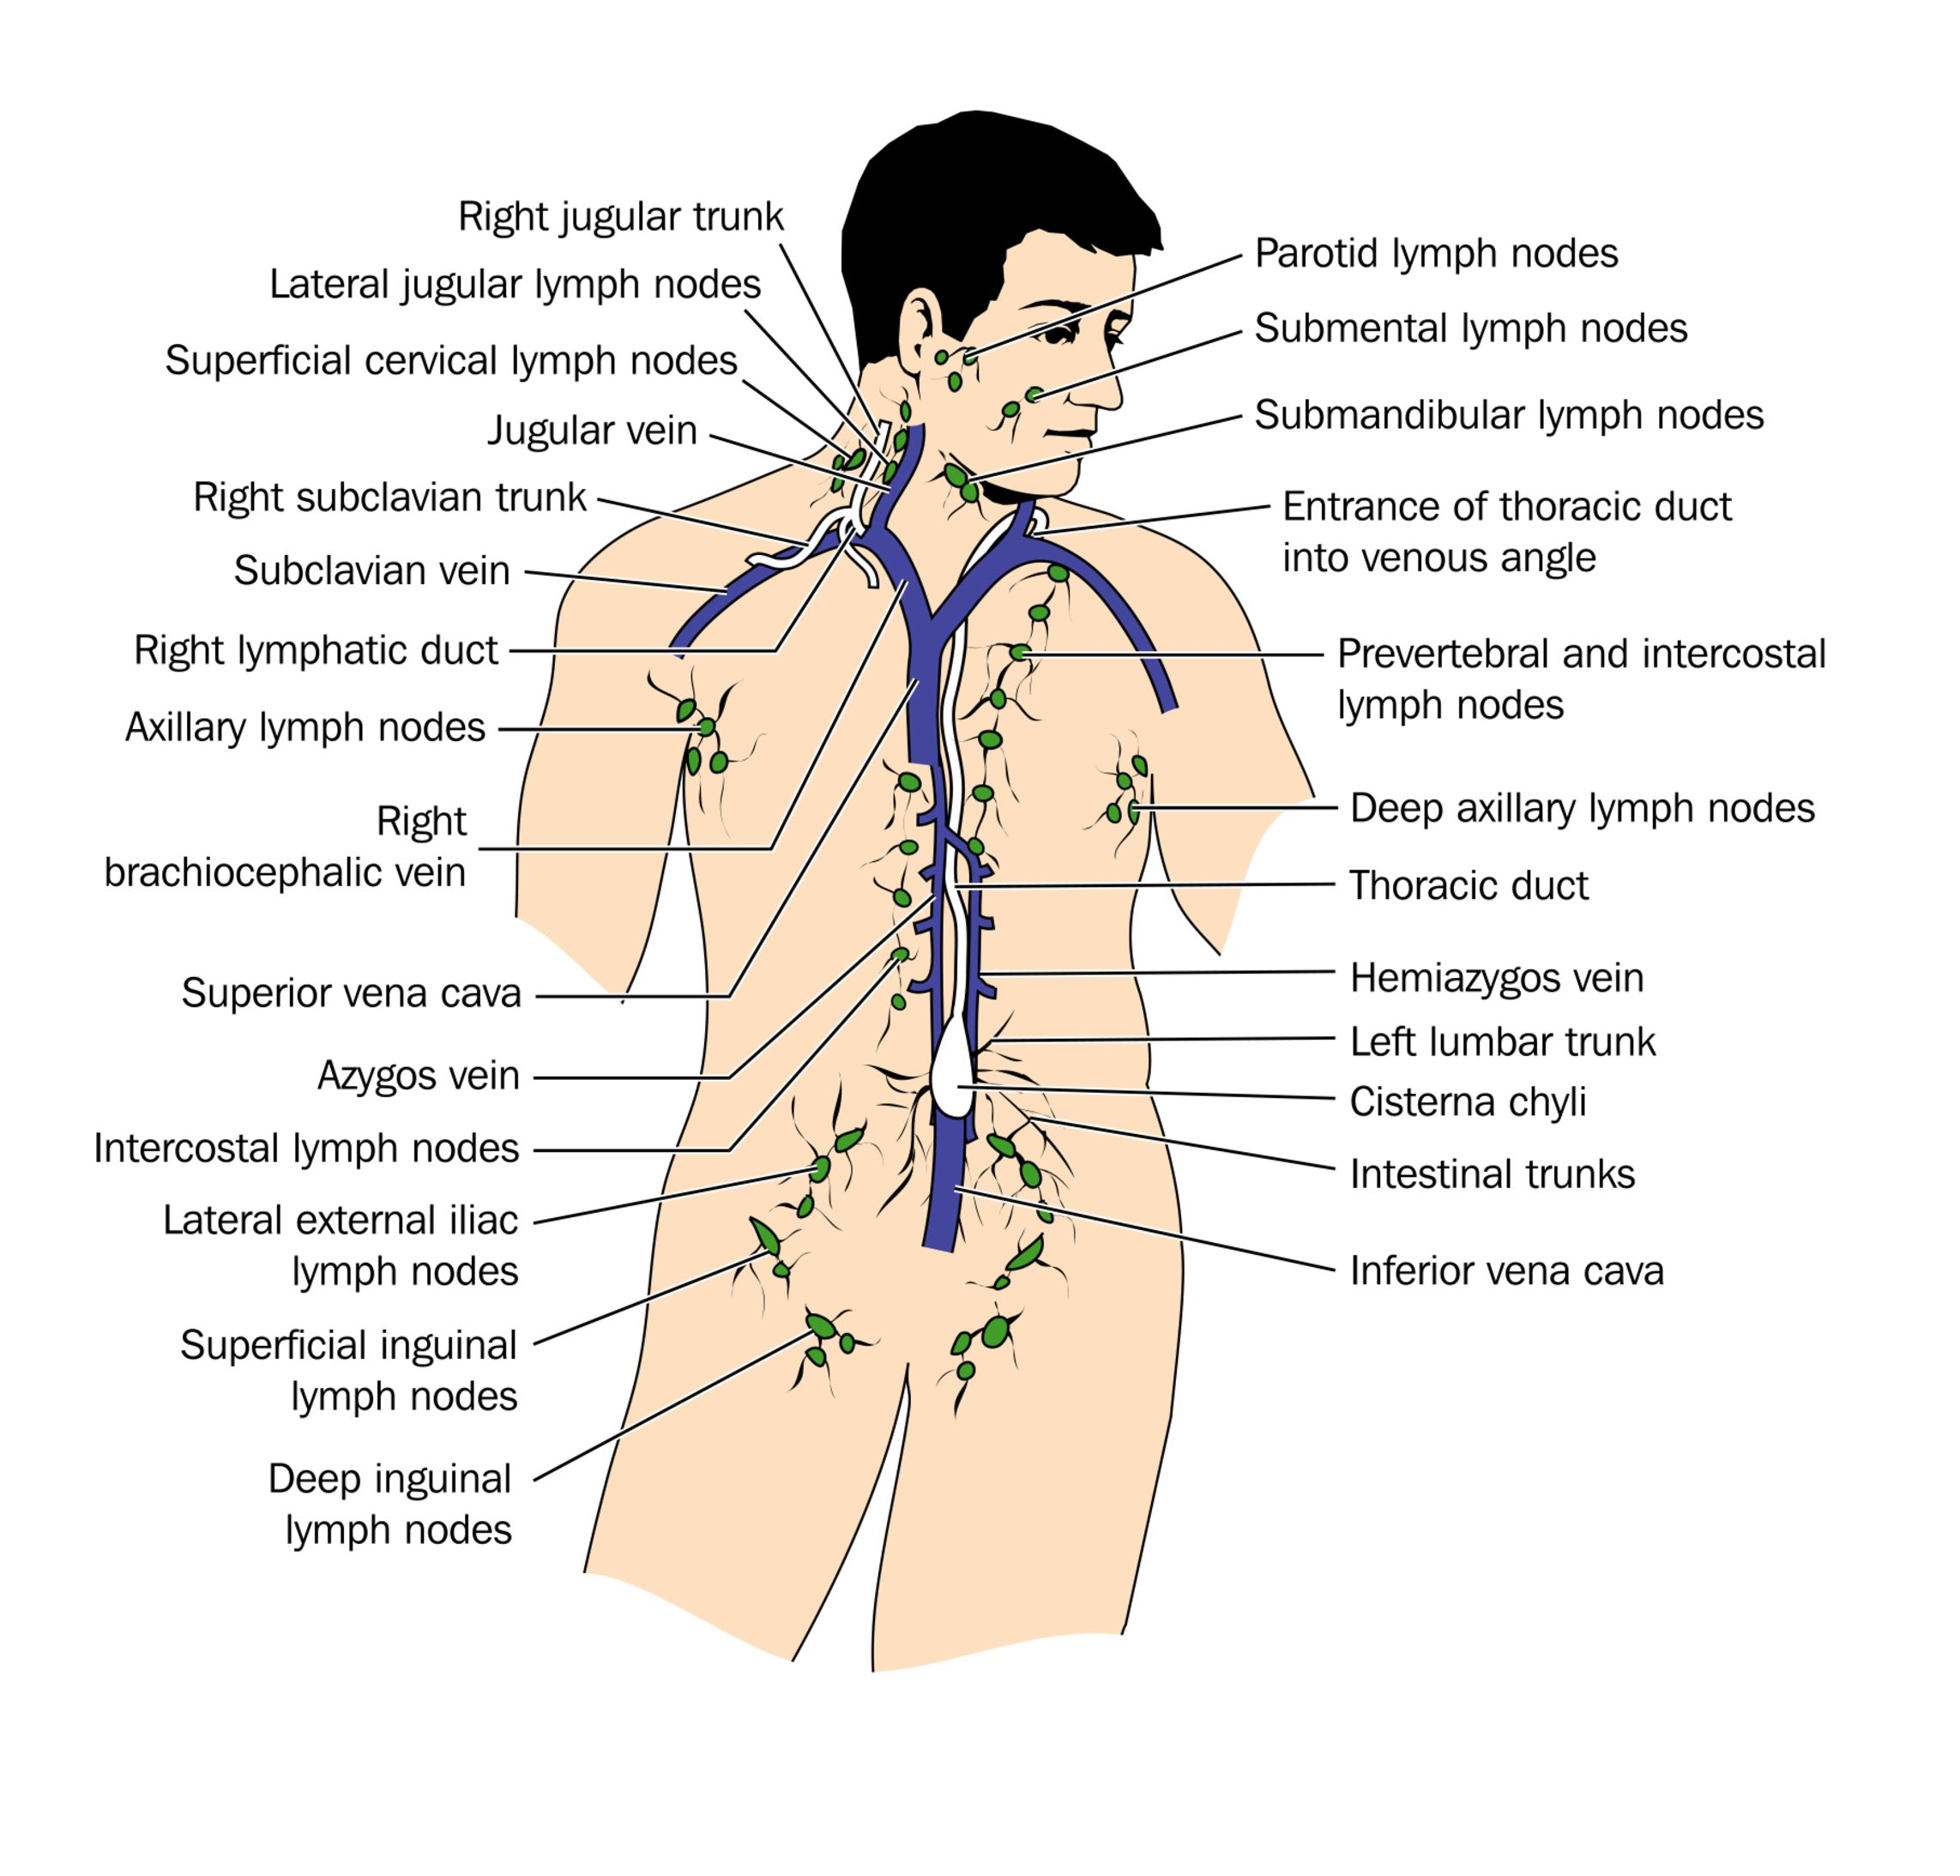 Awesome lymph nodes chart ensign anatomy of human body images also node hobit fullring rh